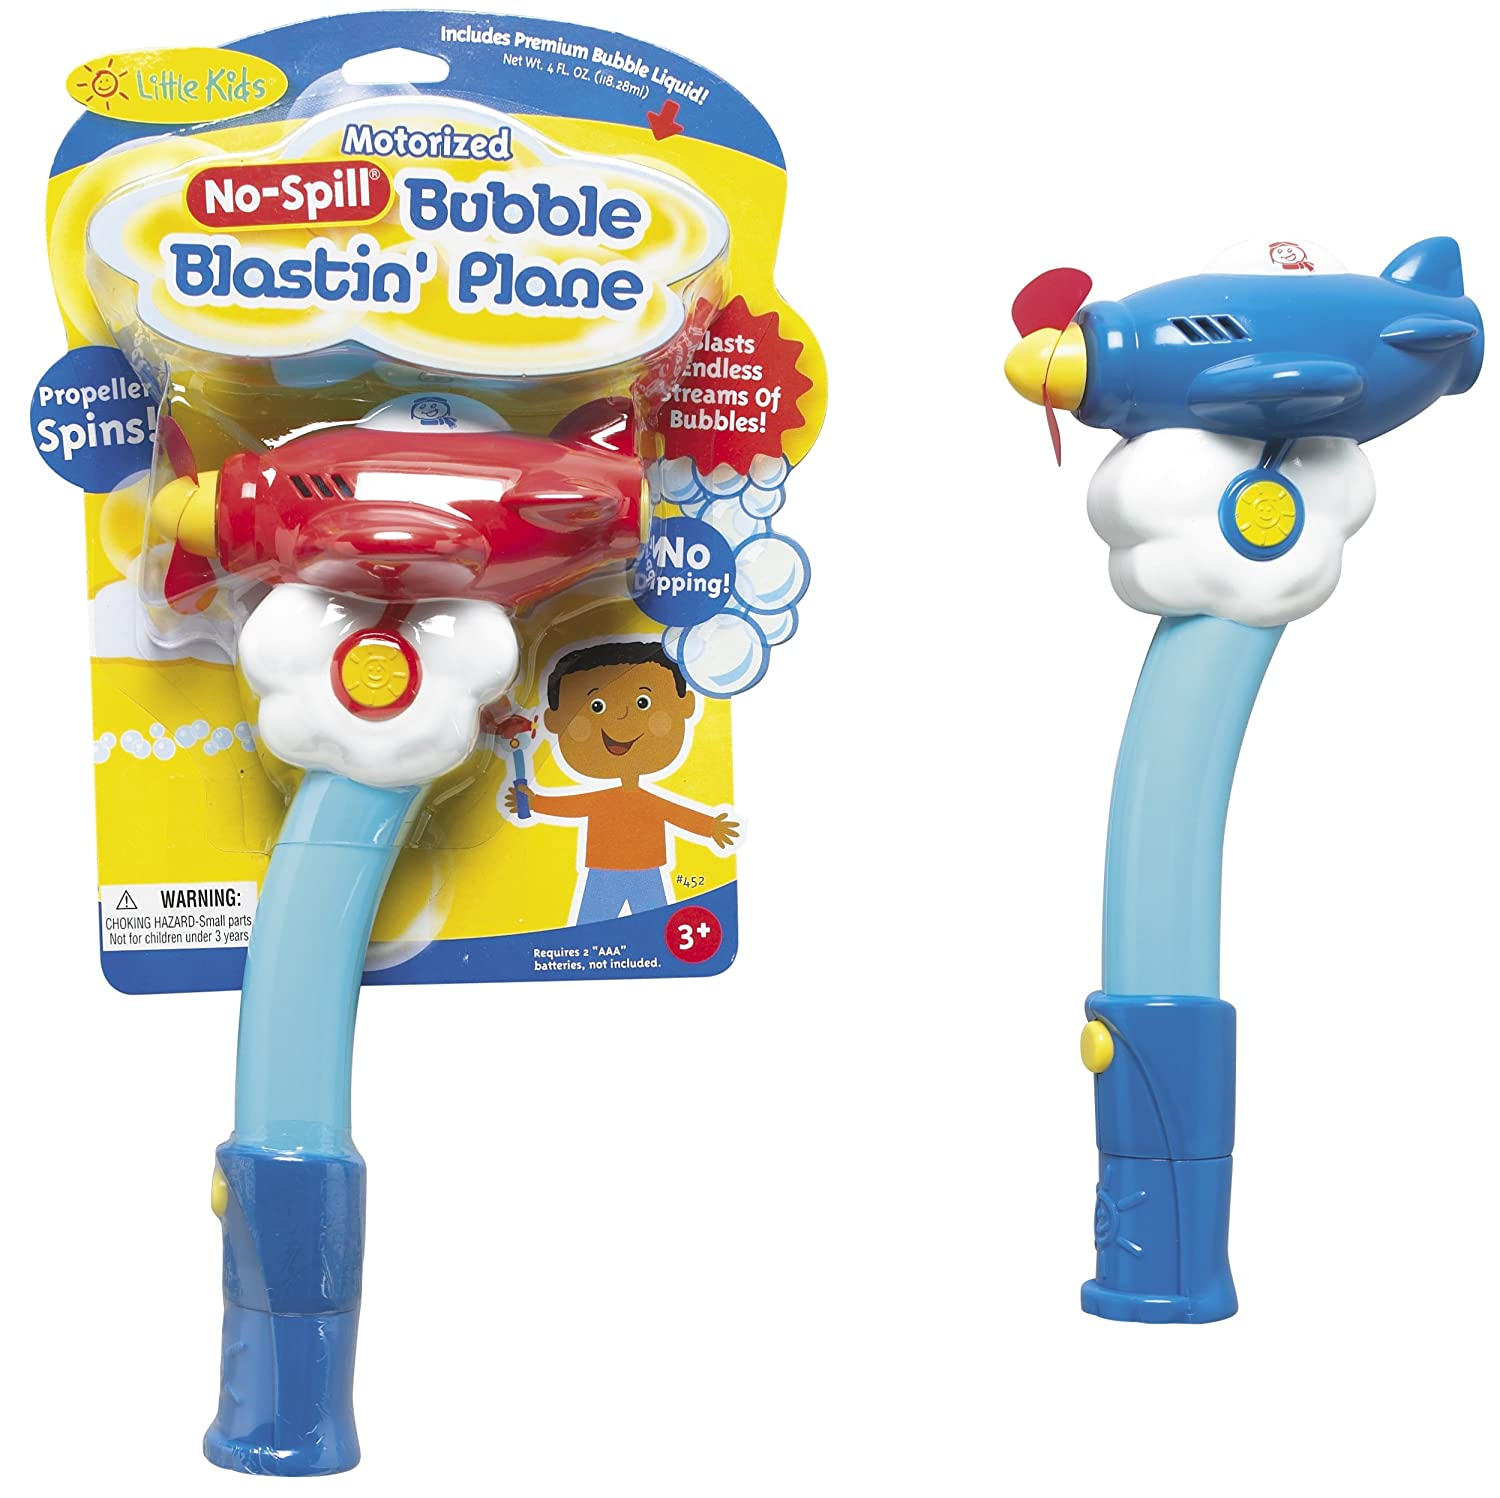 amazoncom little kids motorized nospill bubble blasting plane by little kids colors may vary toys u0026 games